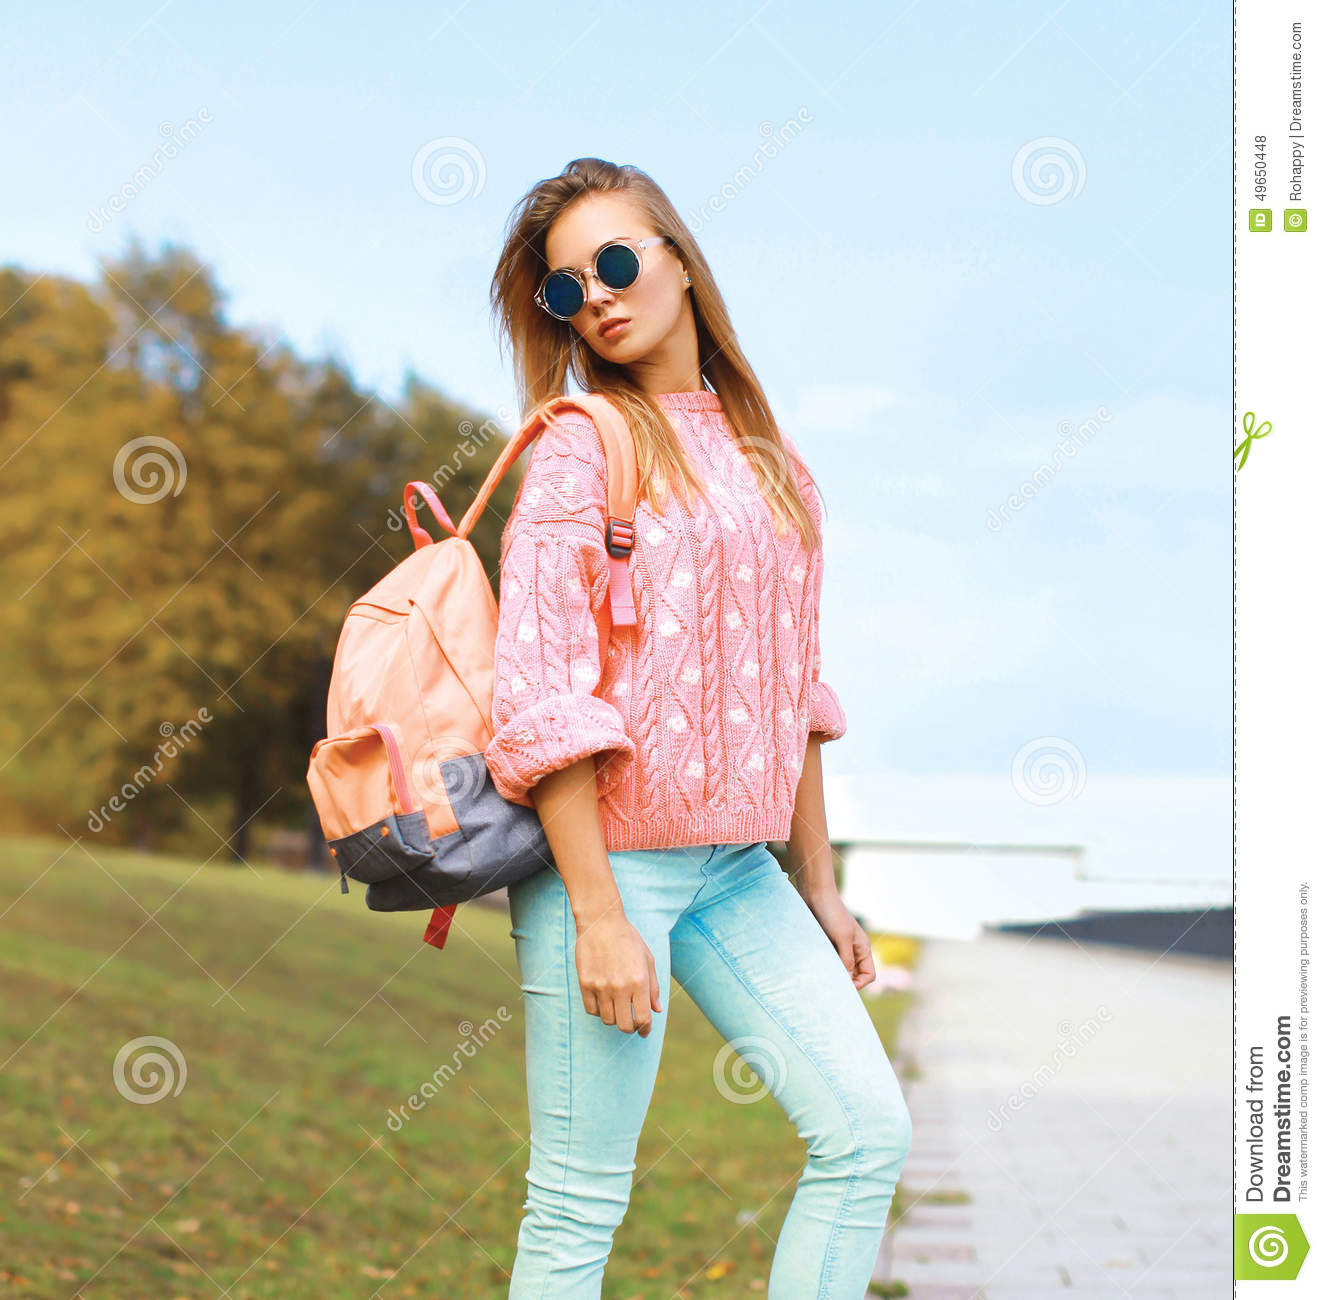 Summer Fashion And People Concept Pretty Stylish Hipster Girl Stock Photo Image 49650448